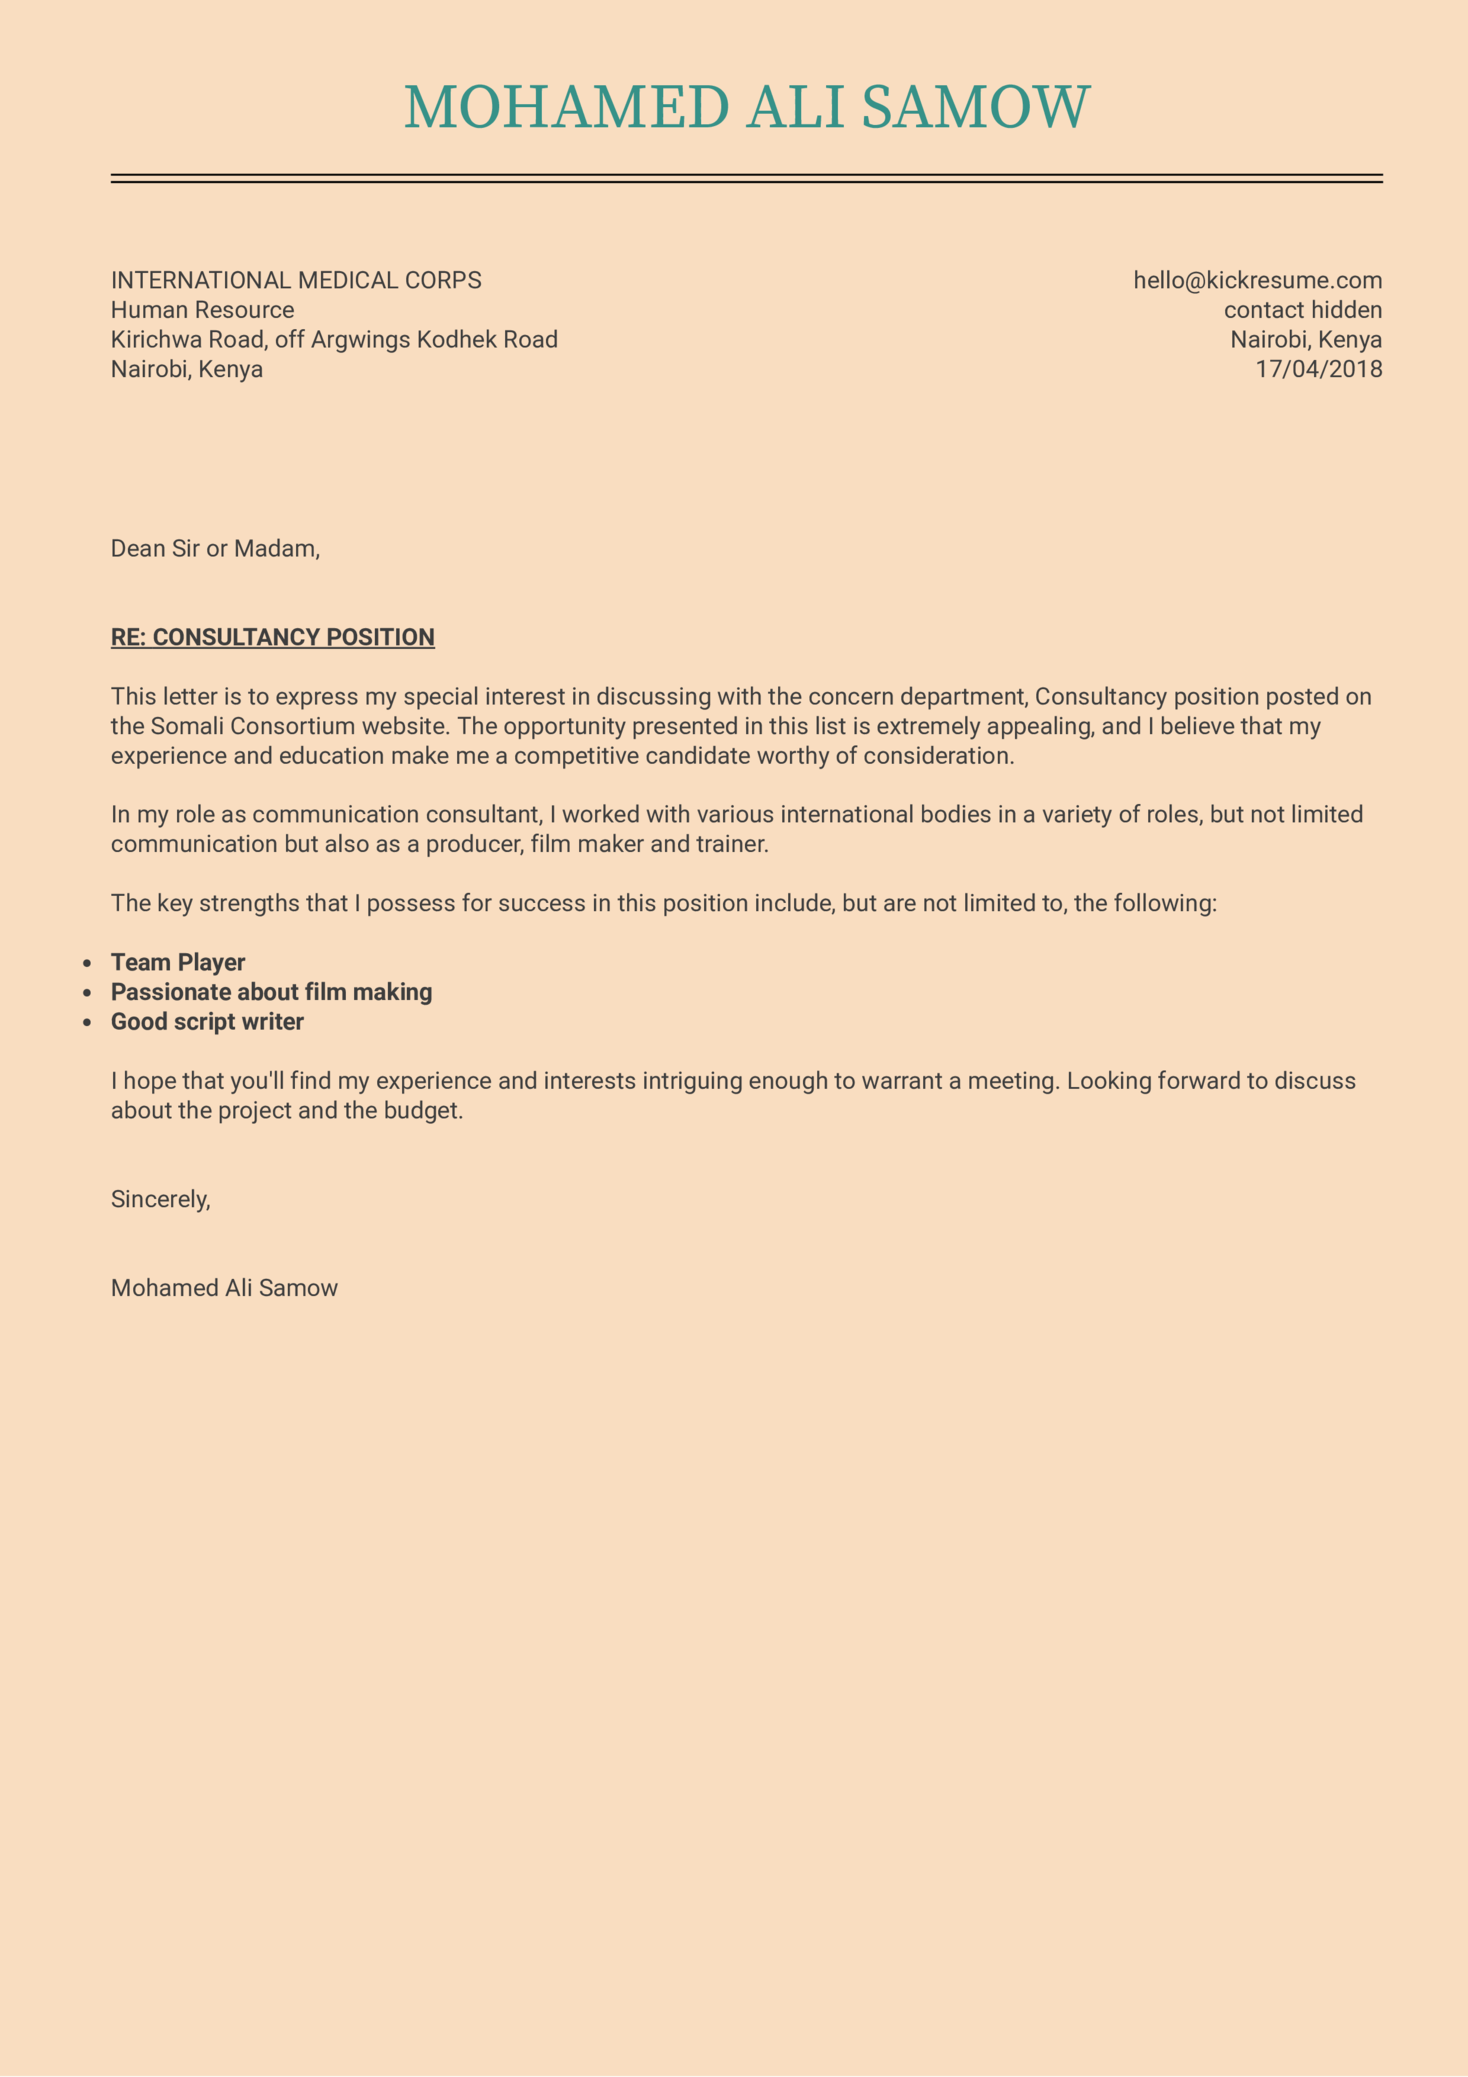 Cover Letter Examples by Real People: IT project manager ...